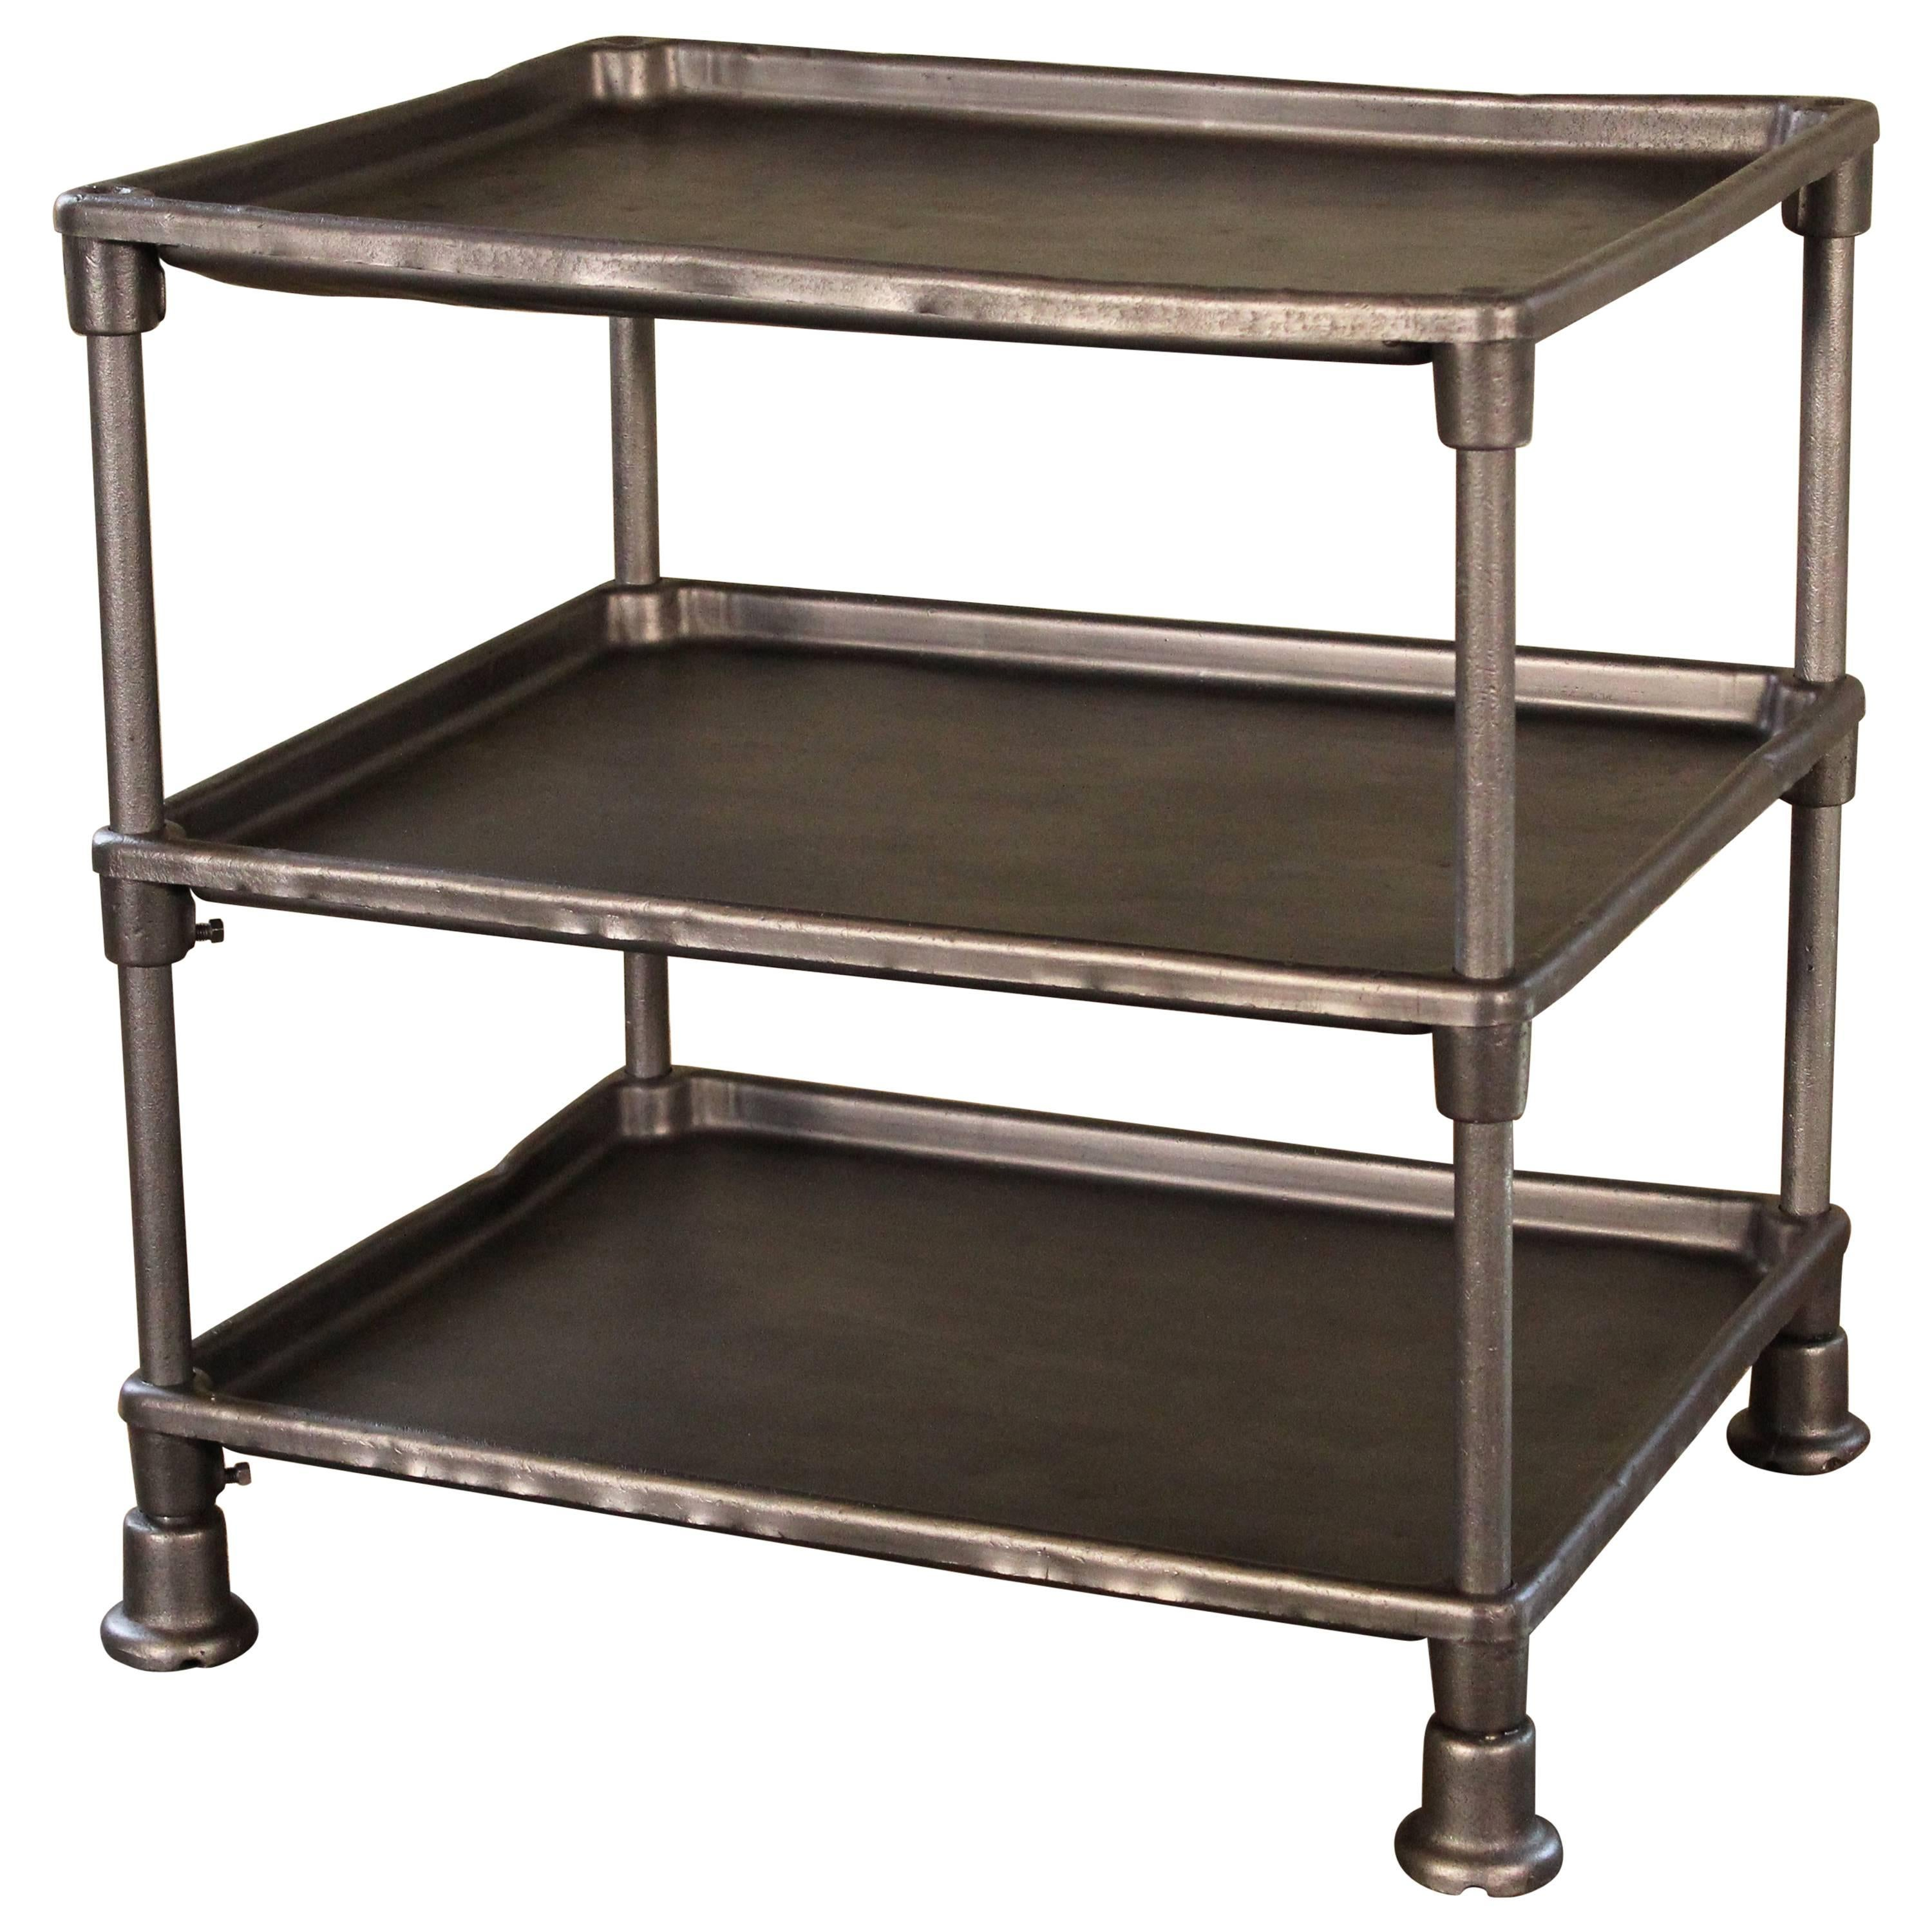 Authentic Industrial Adjustable Three-Tier Table, Cast Iron and Steel